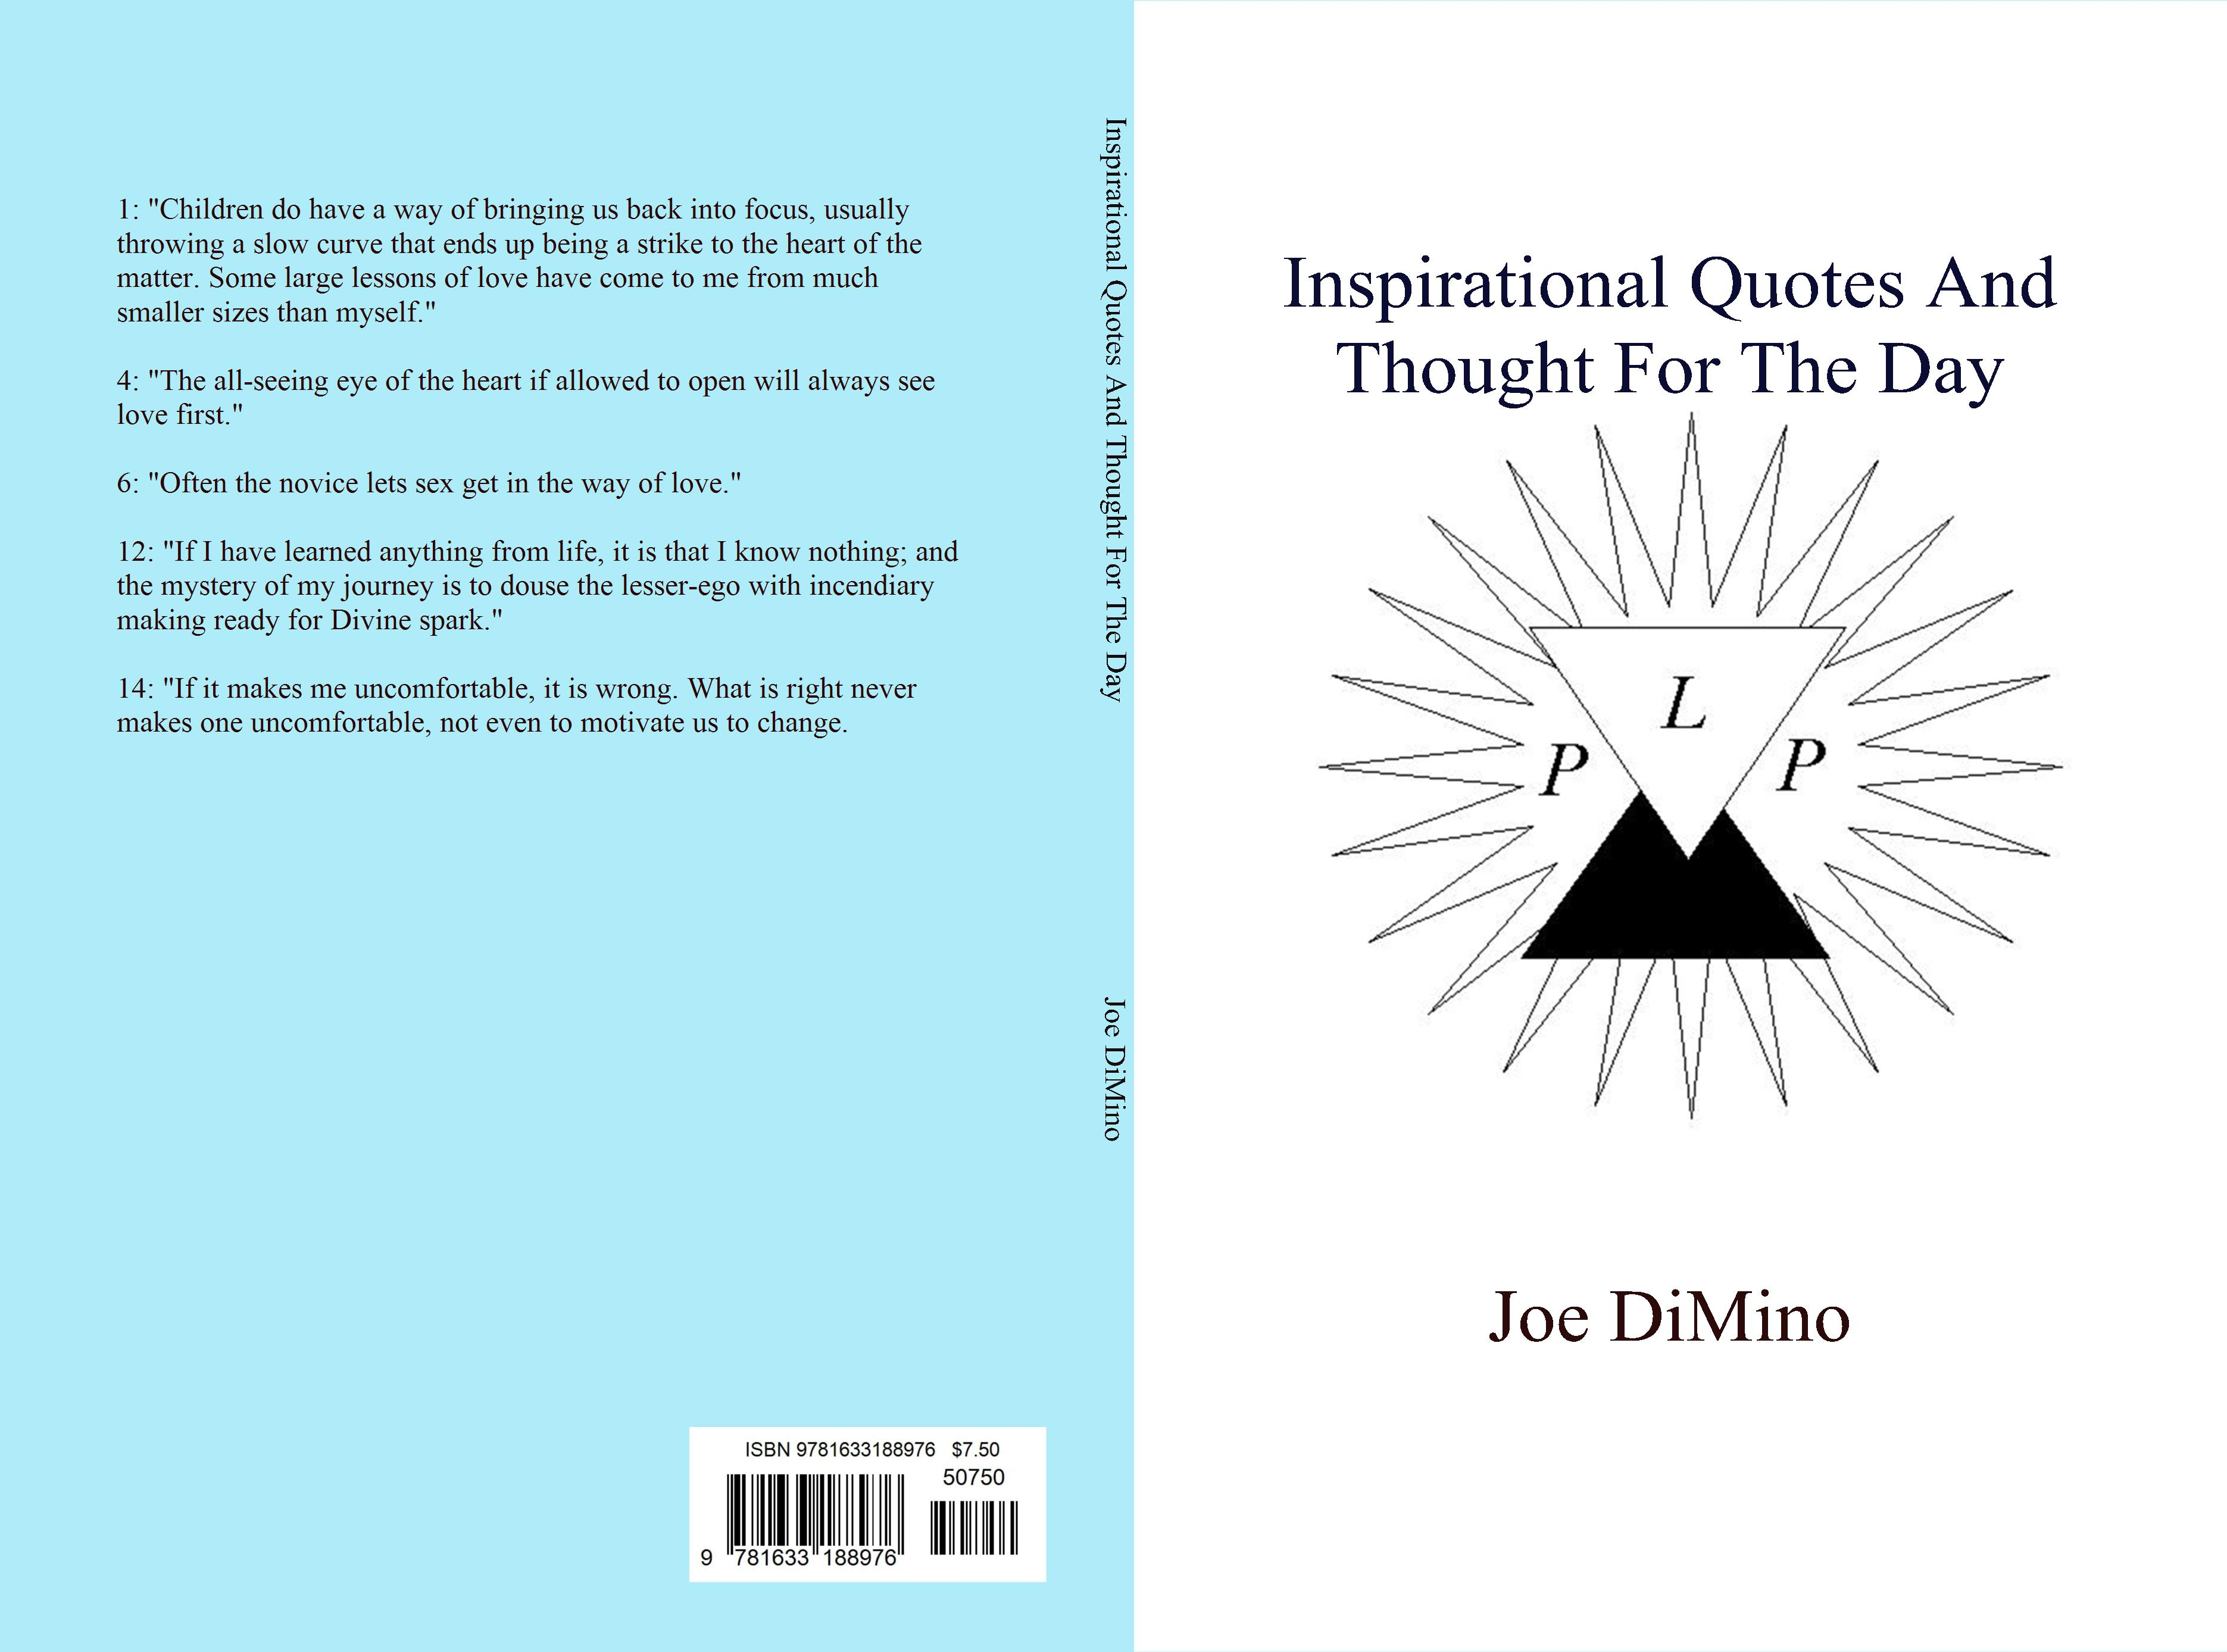 Thought For The Day Quotes Best Inspirational Quotes And Thought For The Dayjoe Dimino  $7.50